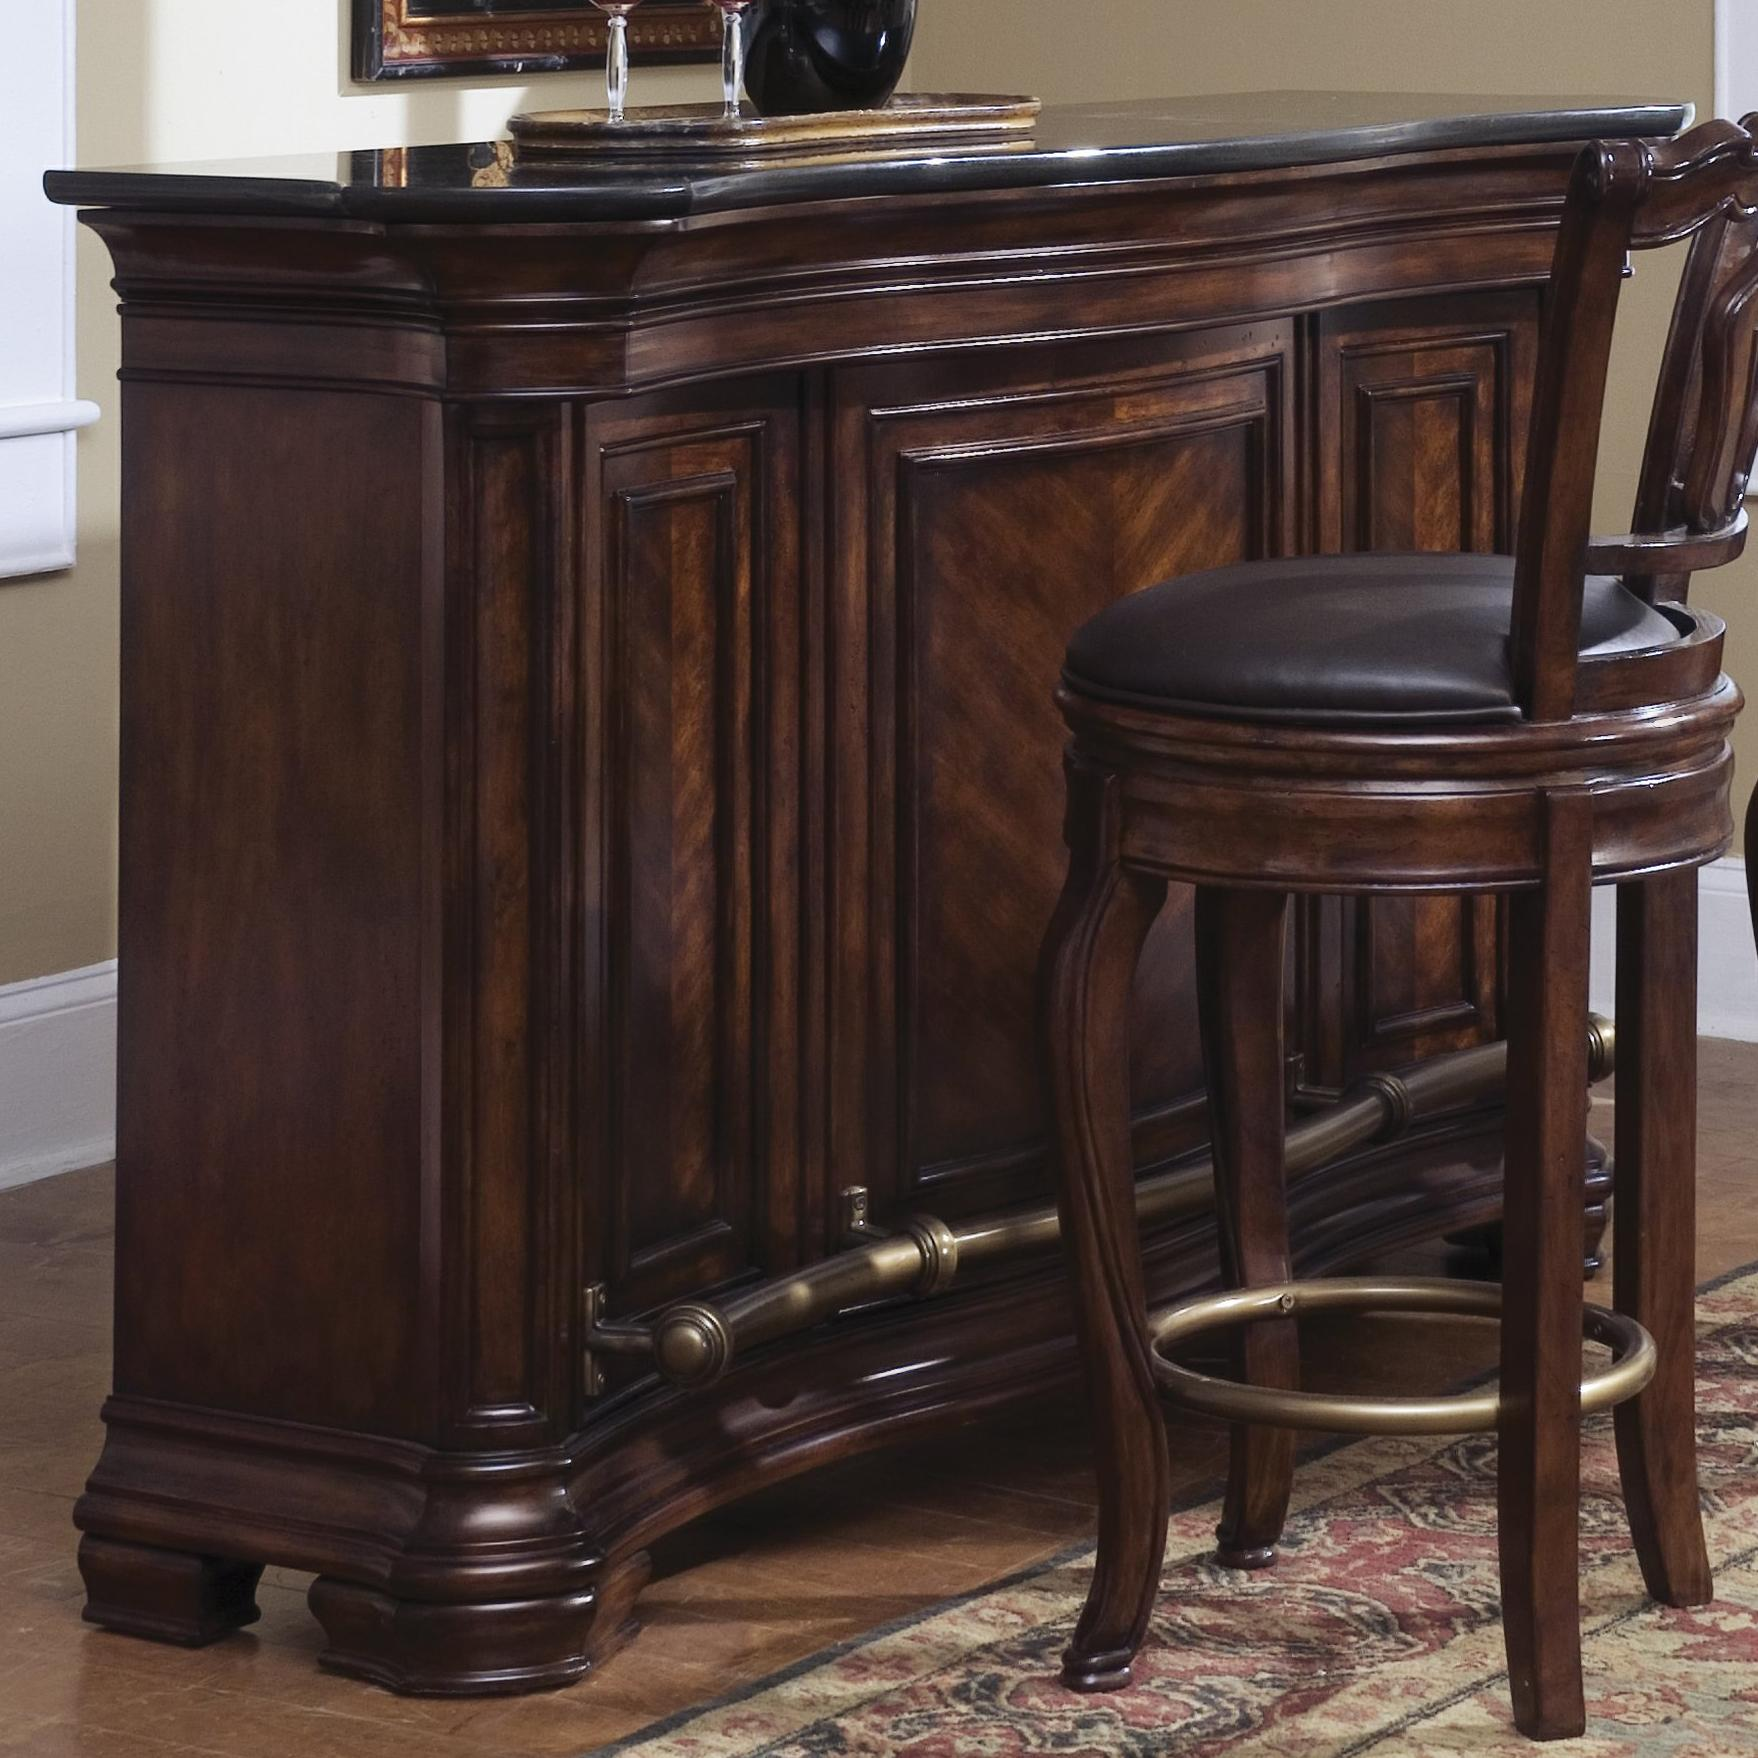 Pulaski Furniture Accents Toscano Vialetto Bar - Item Number: 657500